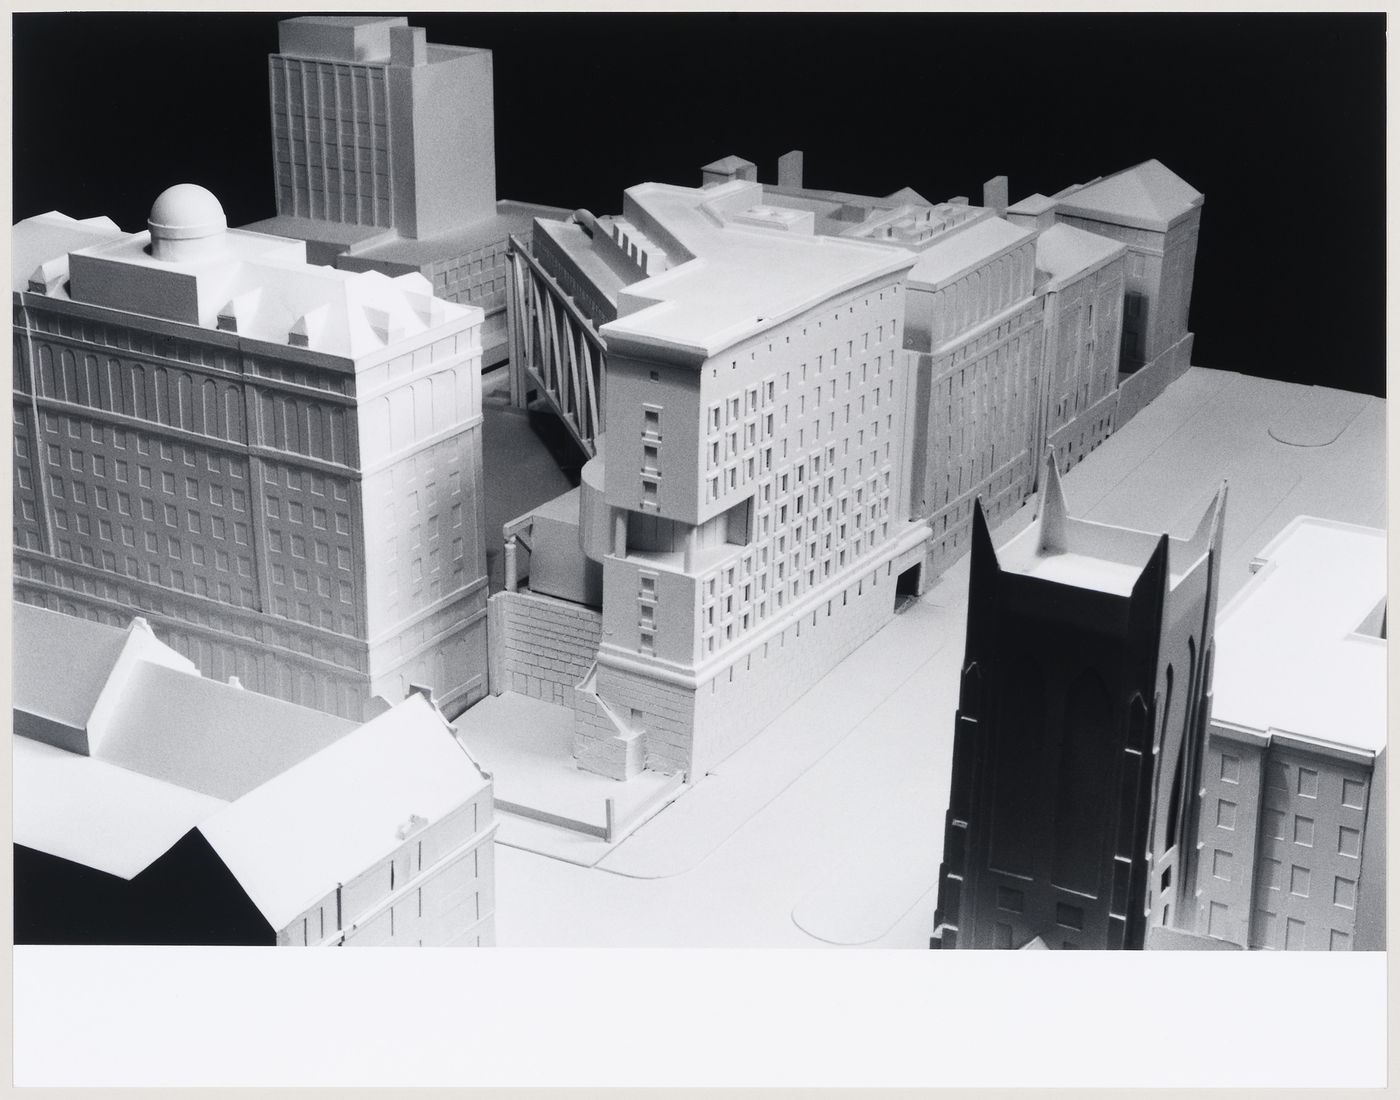 Chandler North Building, Department of Chemistry, Columbia University, New York, New York: model view